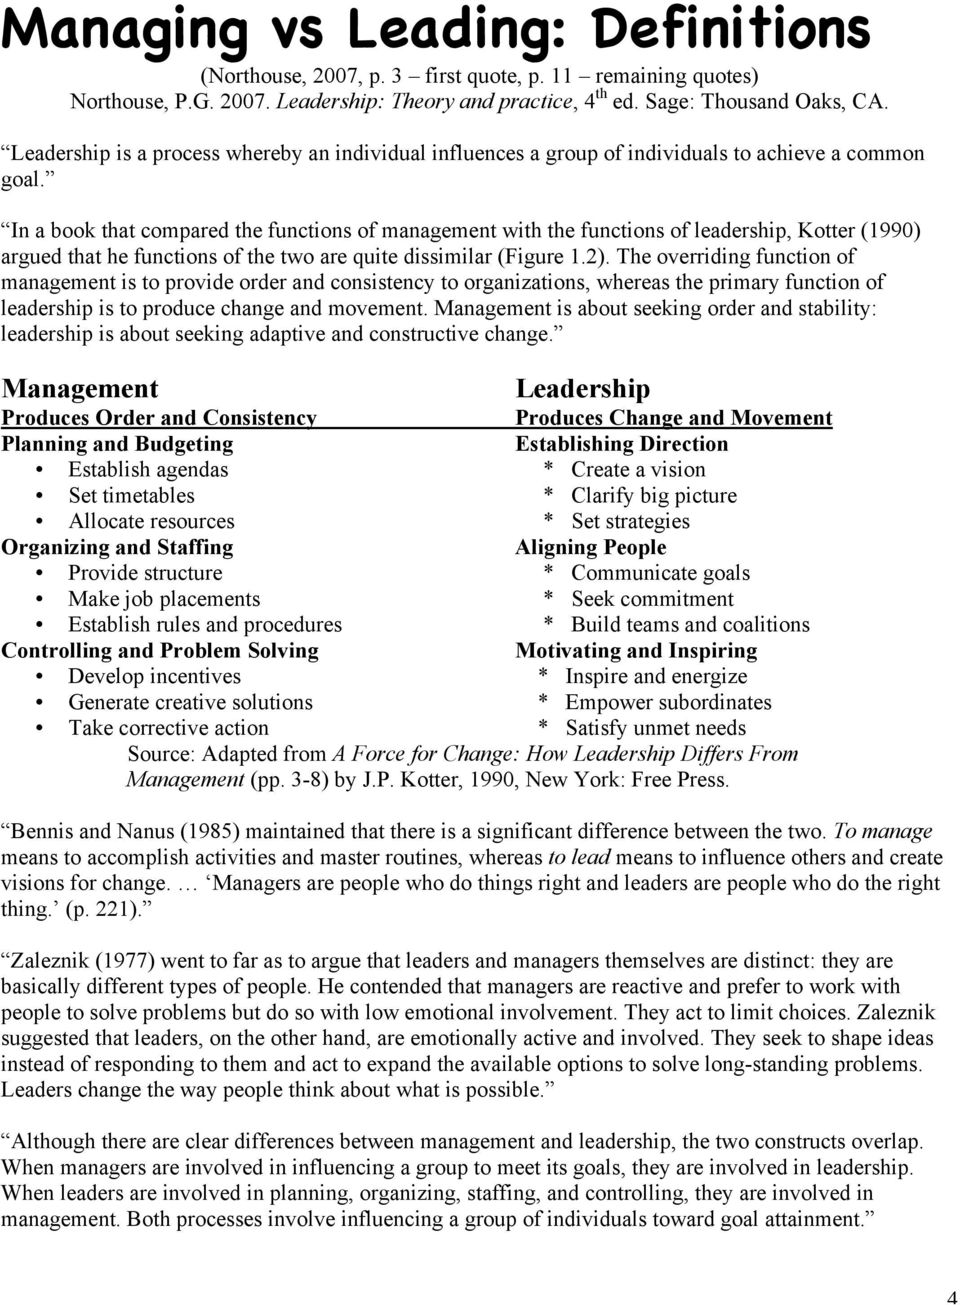 leadership and management the differences and overlap Alice eagly, a frontrunner in the research on gender differences in leadership, found through multiple studies that differences between men and women are small and that the overlap is considerable nevertheless, these small differences have statistical significance in the way men and women are perceived in leadership.